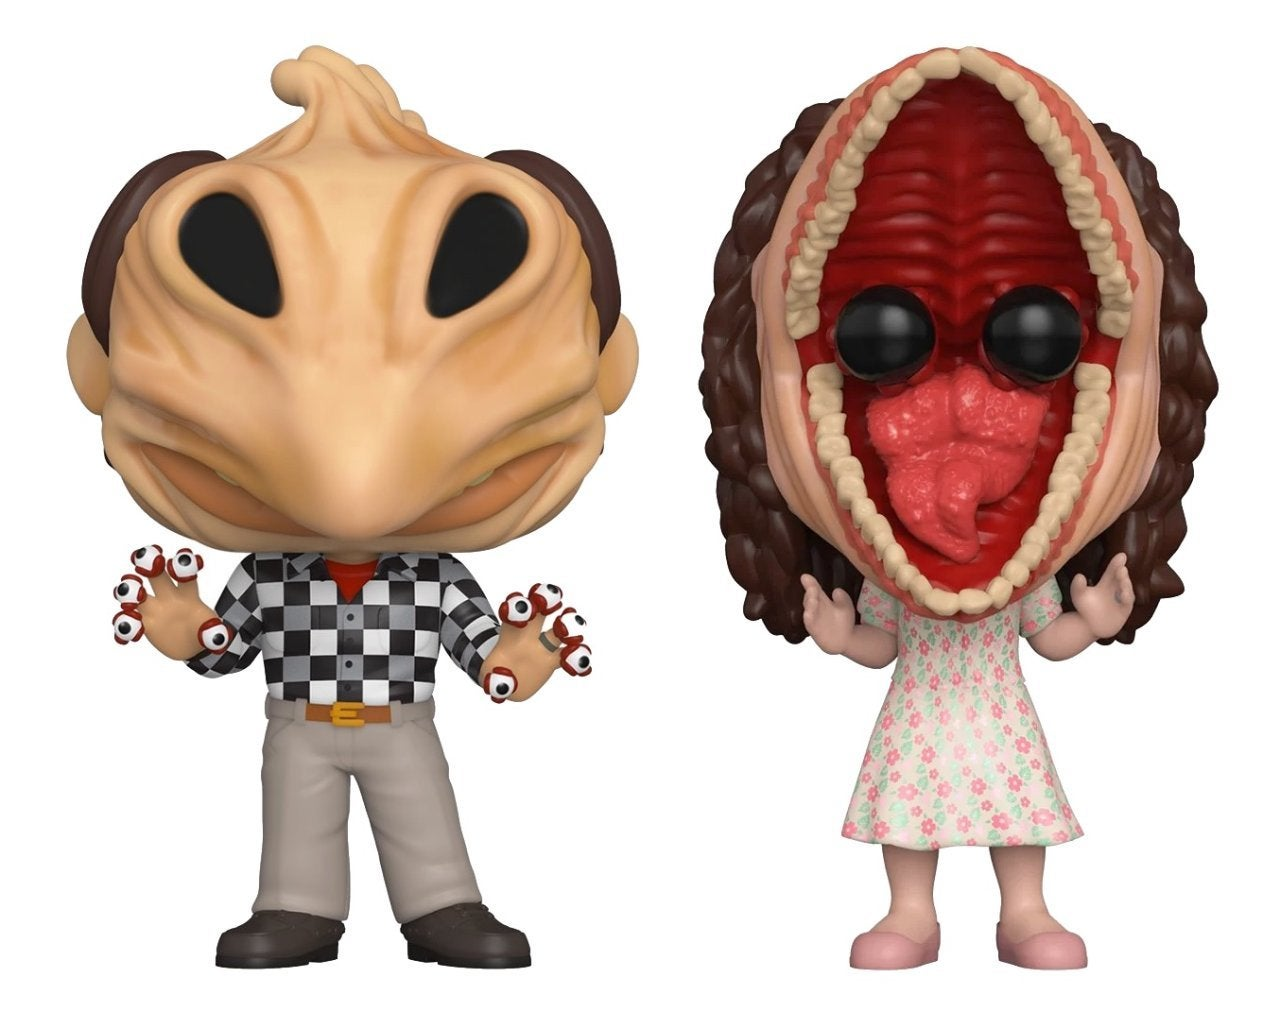 Funko Halloween Fest 2020 Funko's New Beetlejuice Pops Continue Their Tim Burton Funkoween